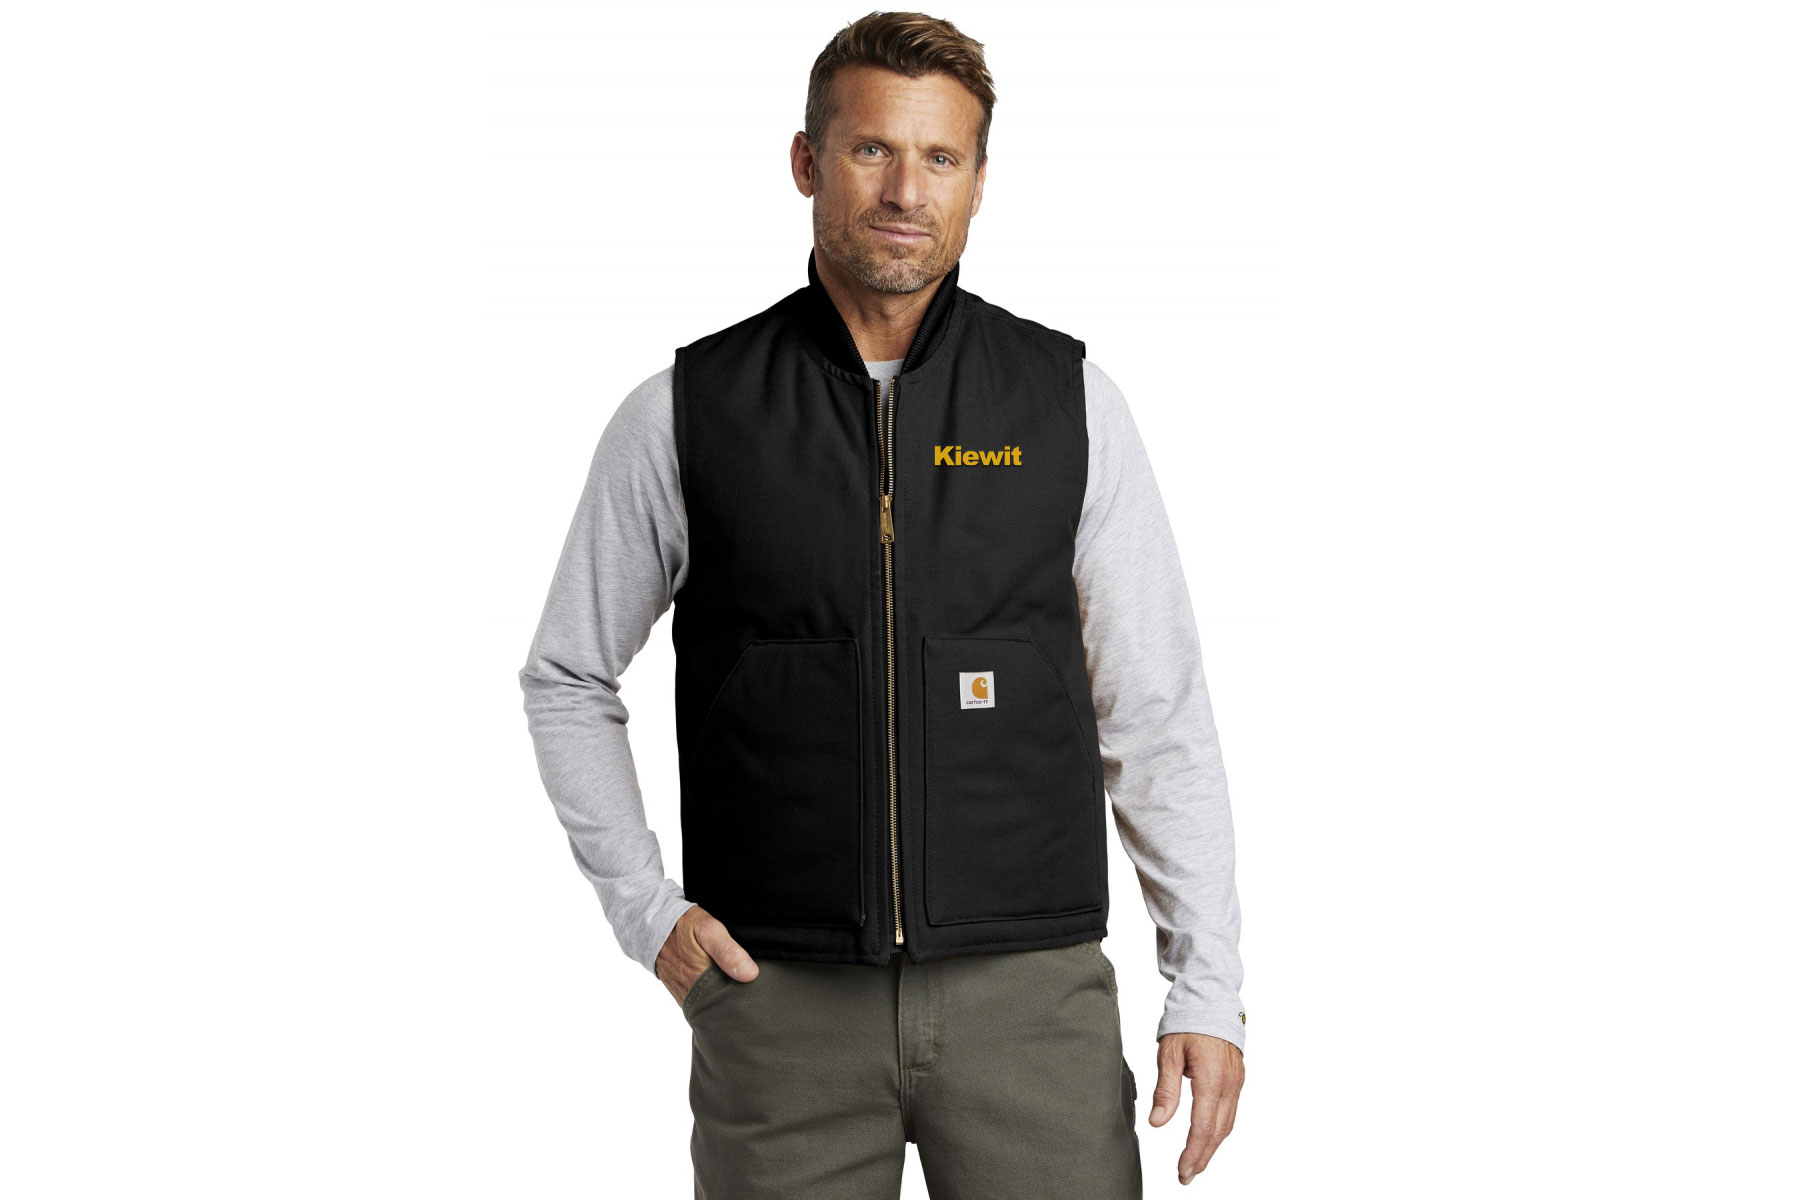 Kiewit - Construction Company Logo on a Carhartt Vest